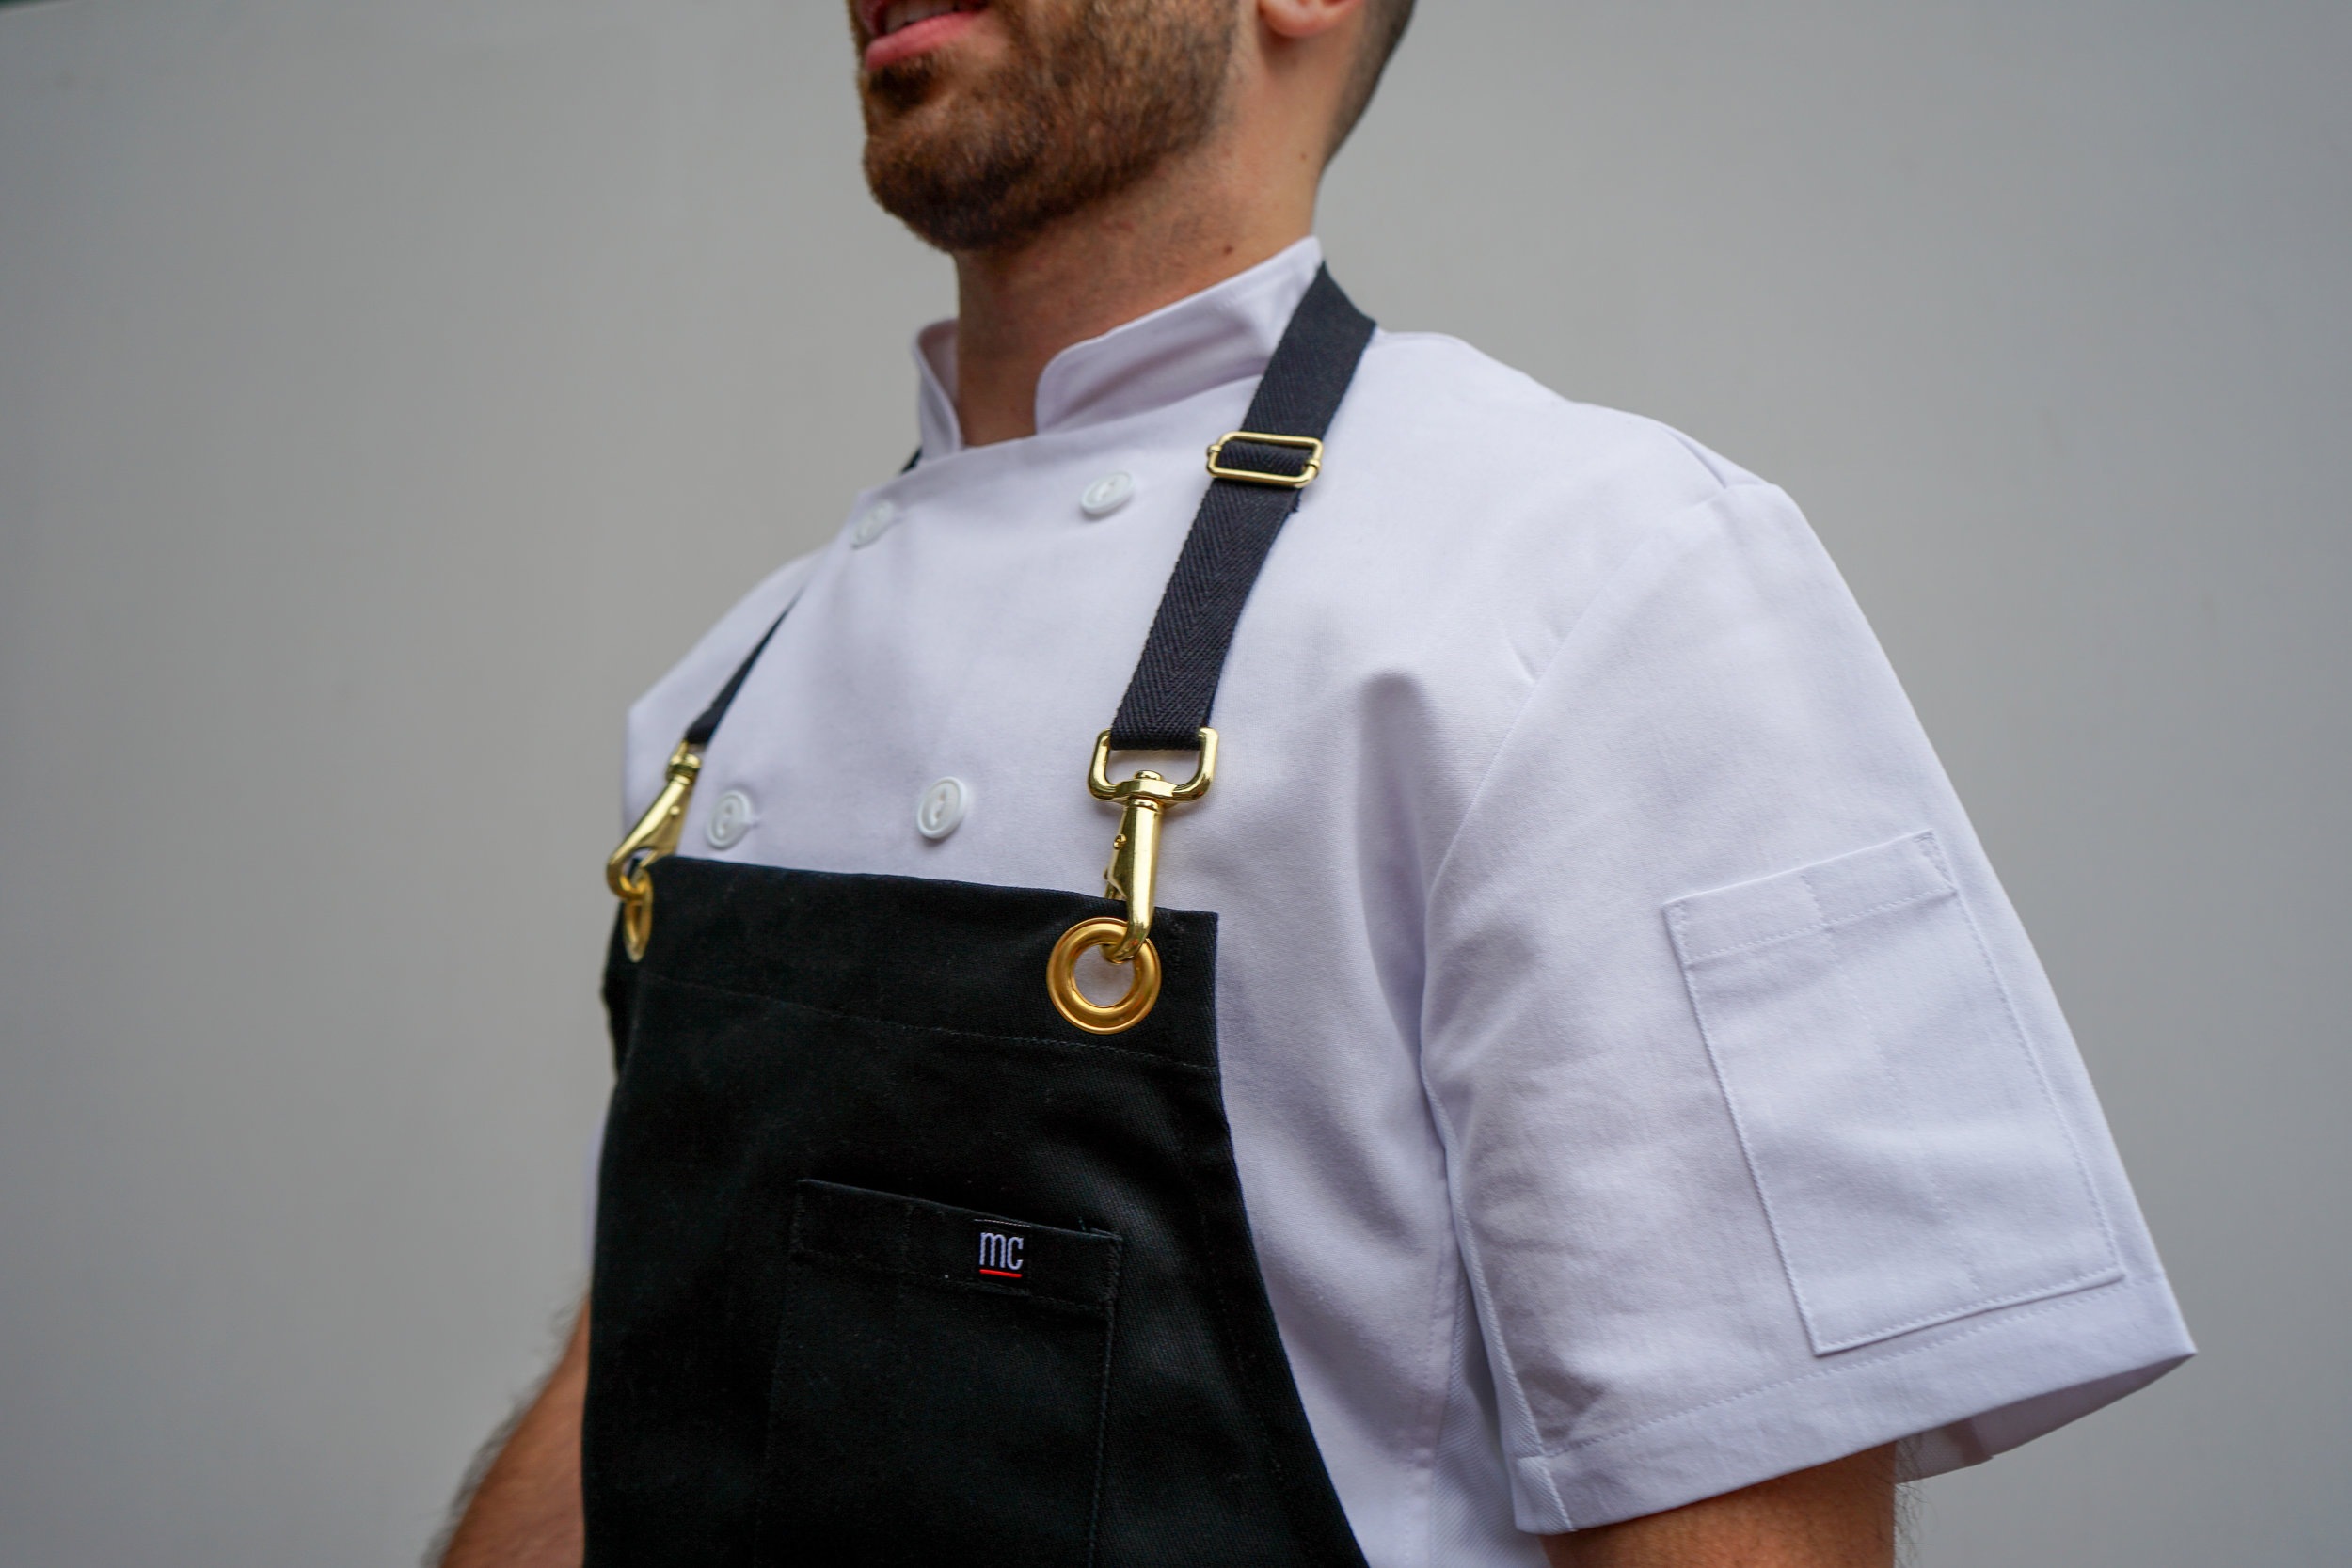 Enkrypt Apron 2.0 - Need some more gold in your life?Rugged fabric built to last, with a bit of accent.